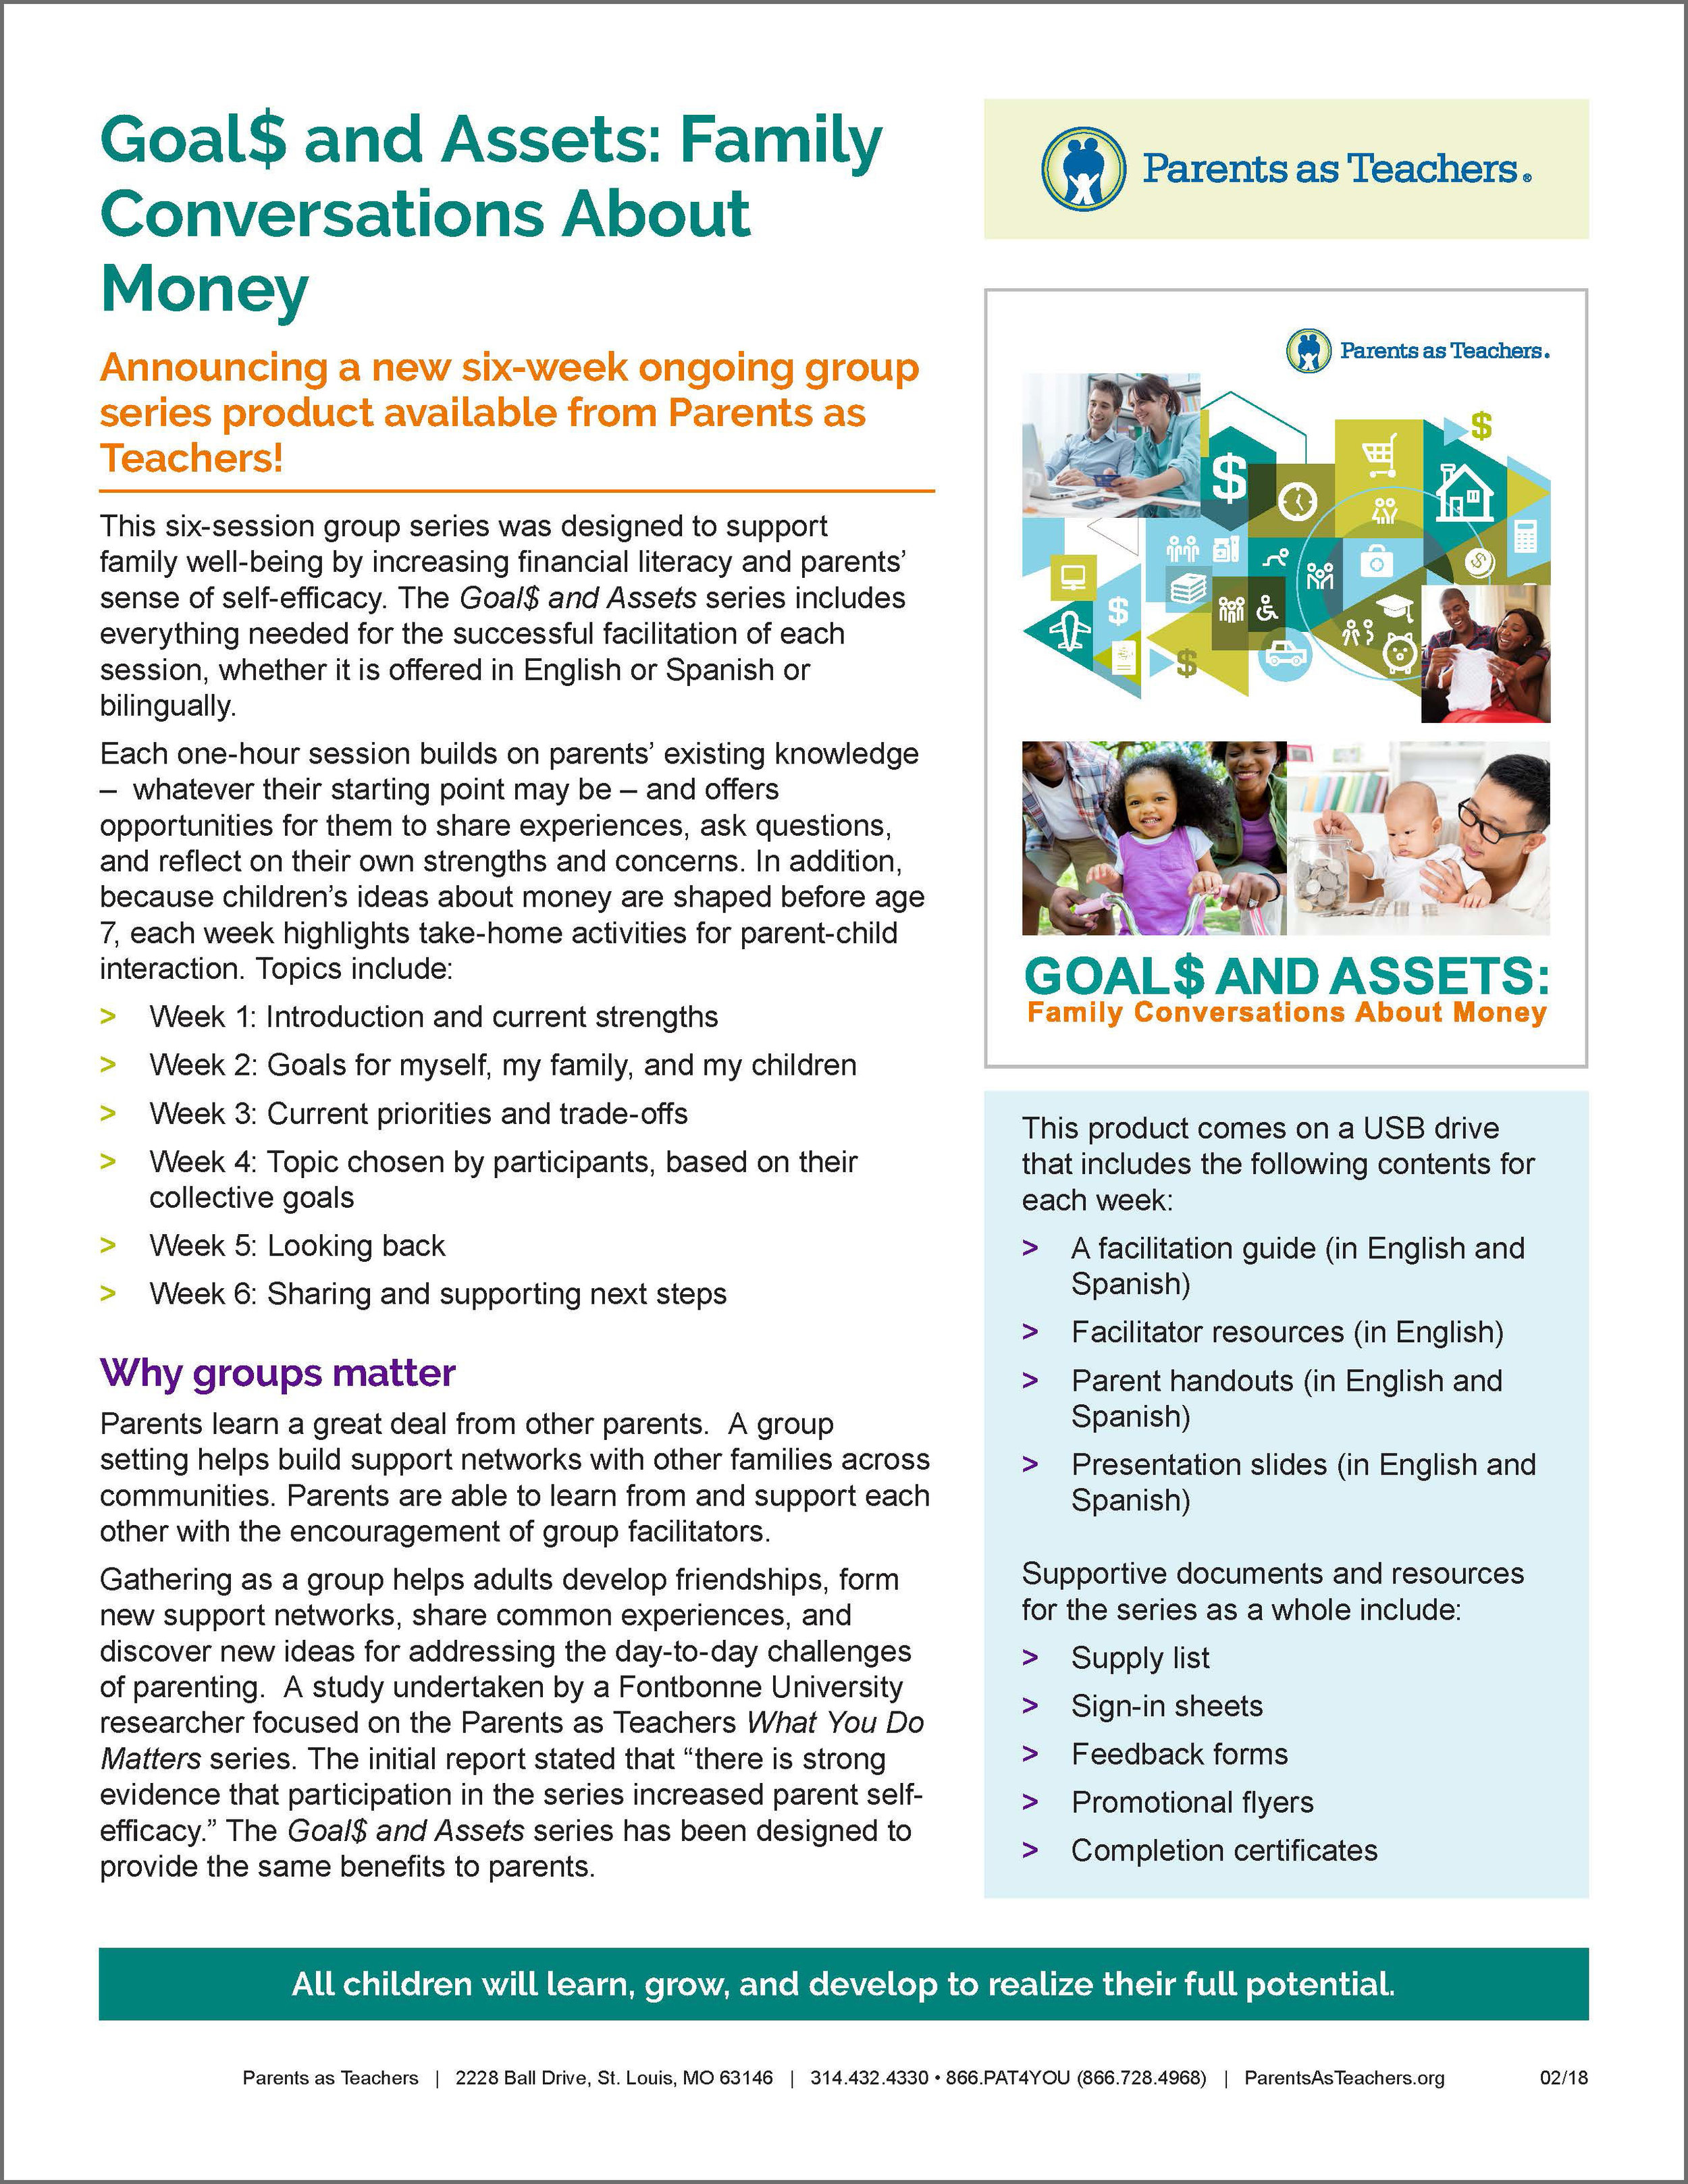 Click image to download the Goal$ and Assets Marketing Flyer